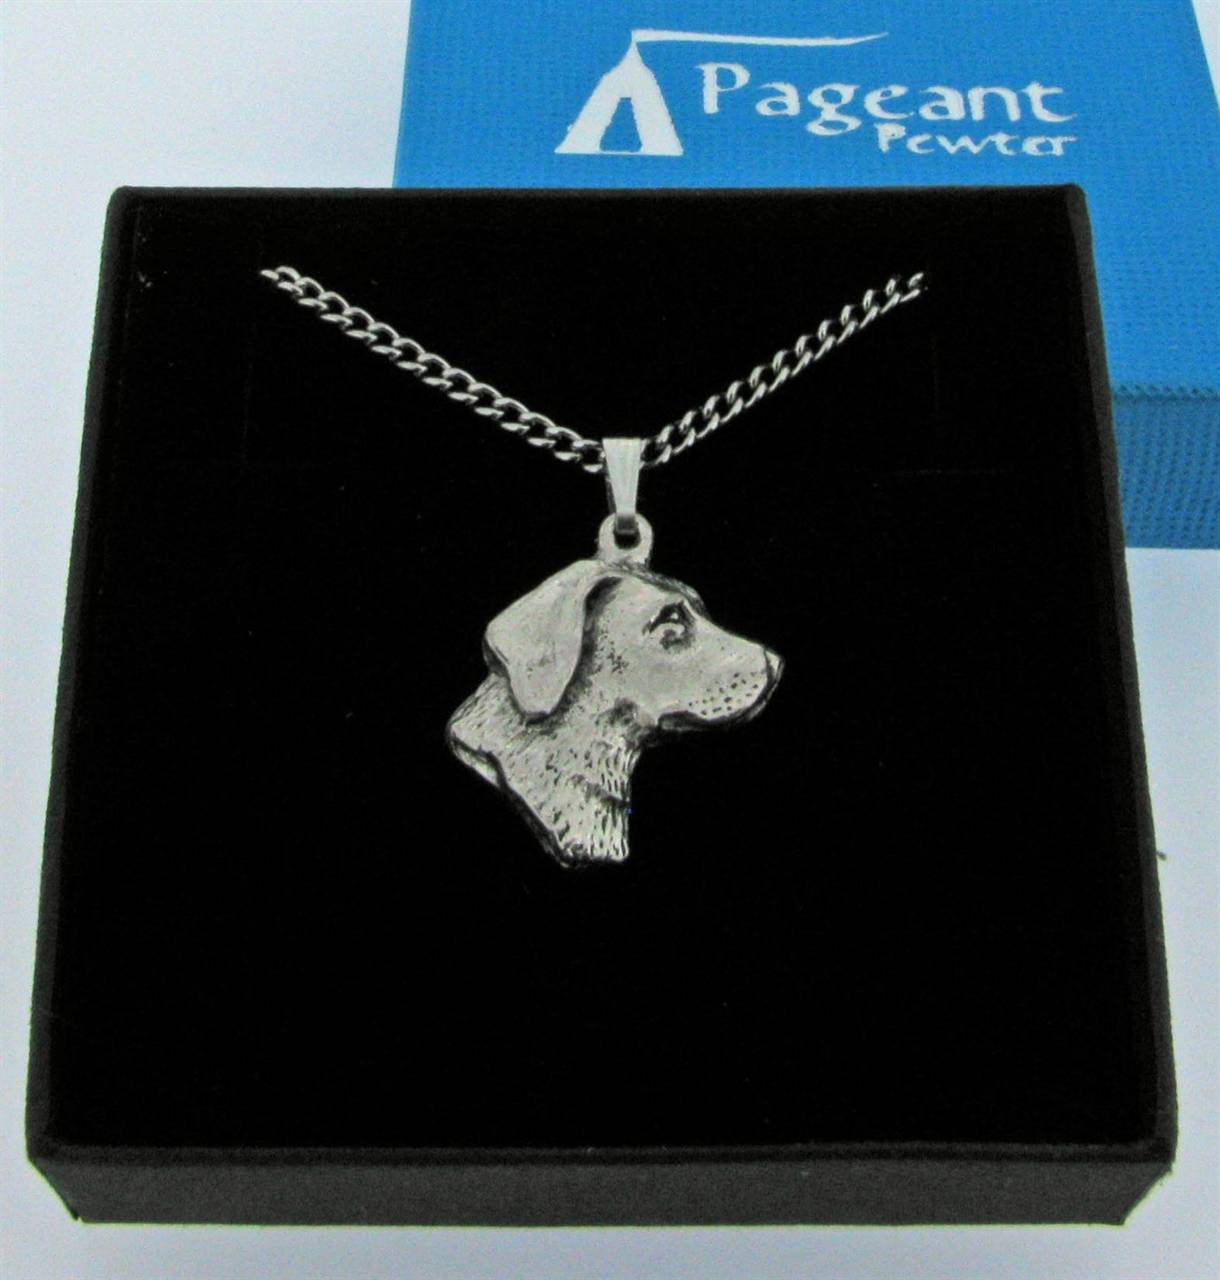 Labrador Head Pendant - high quality pewter gifts from Pageant Pewter